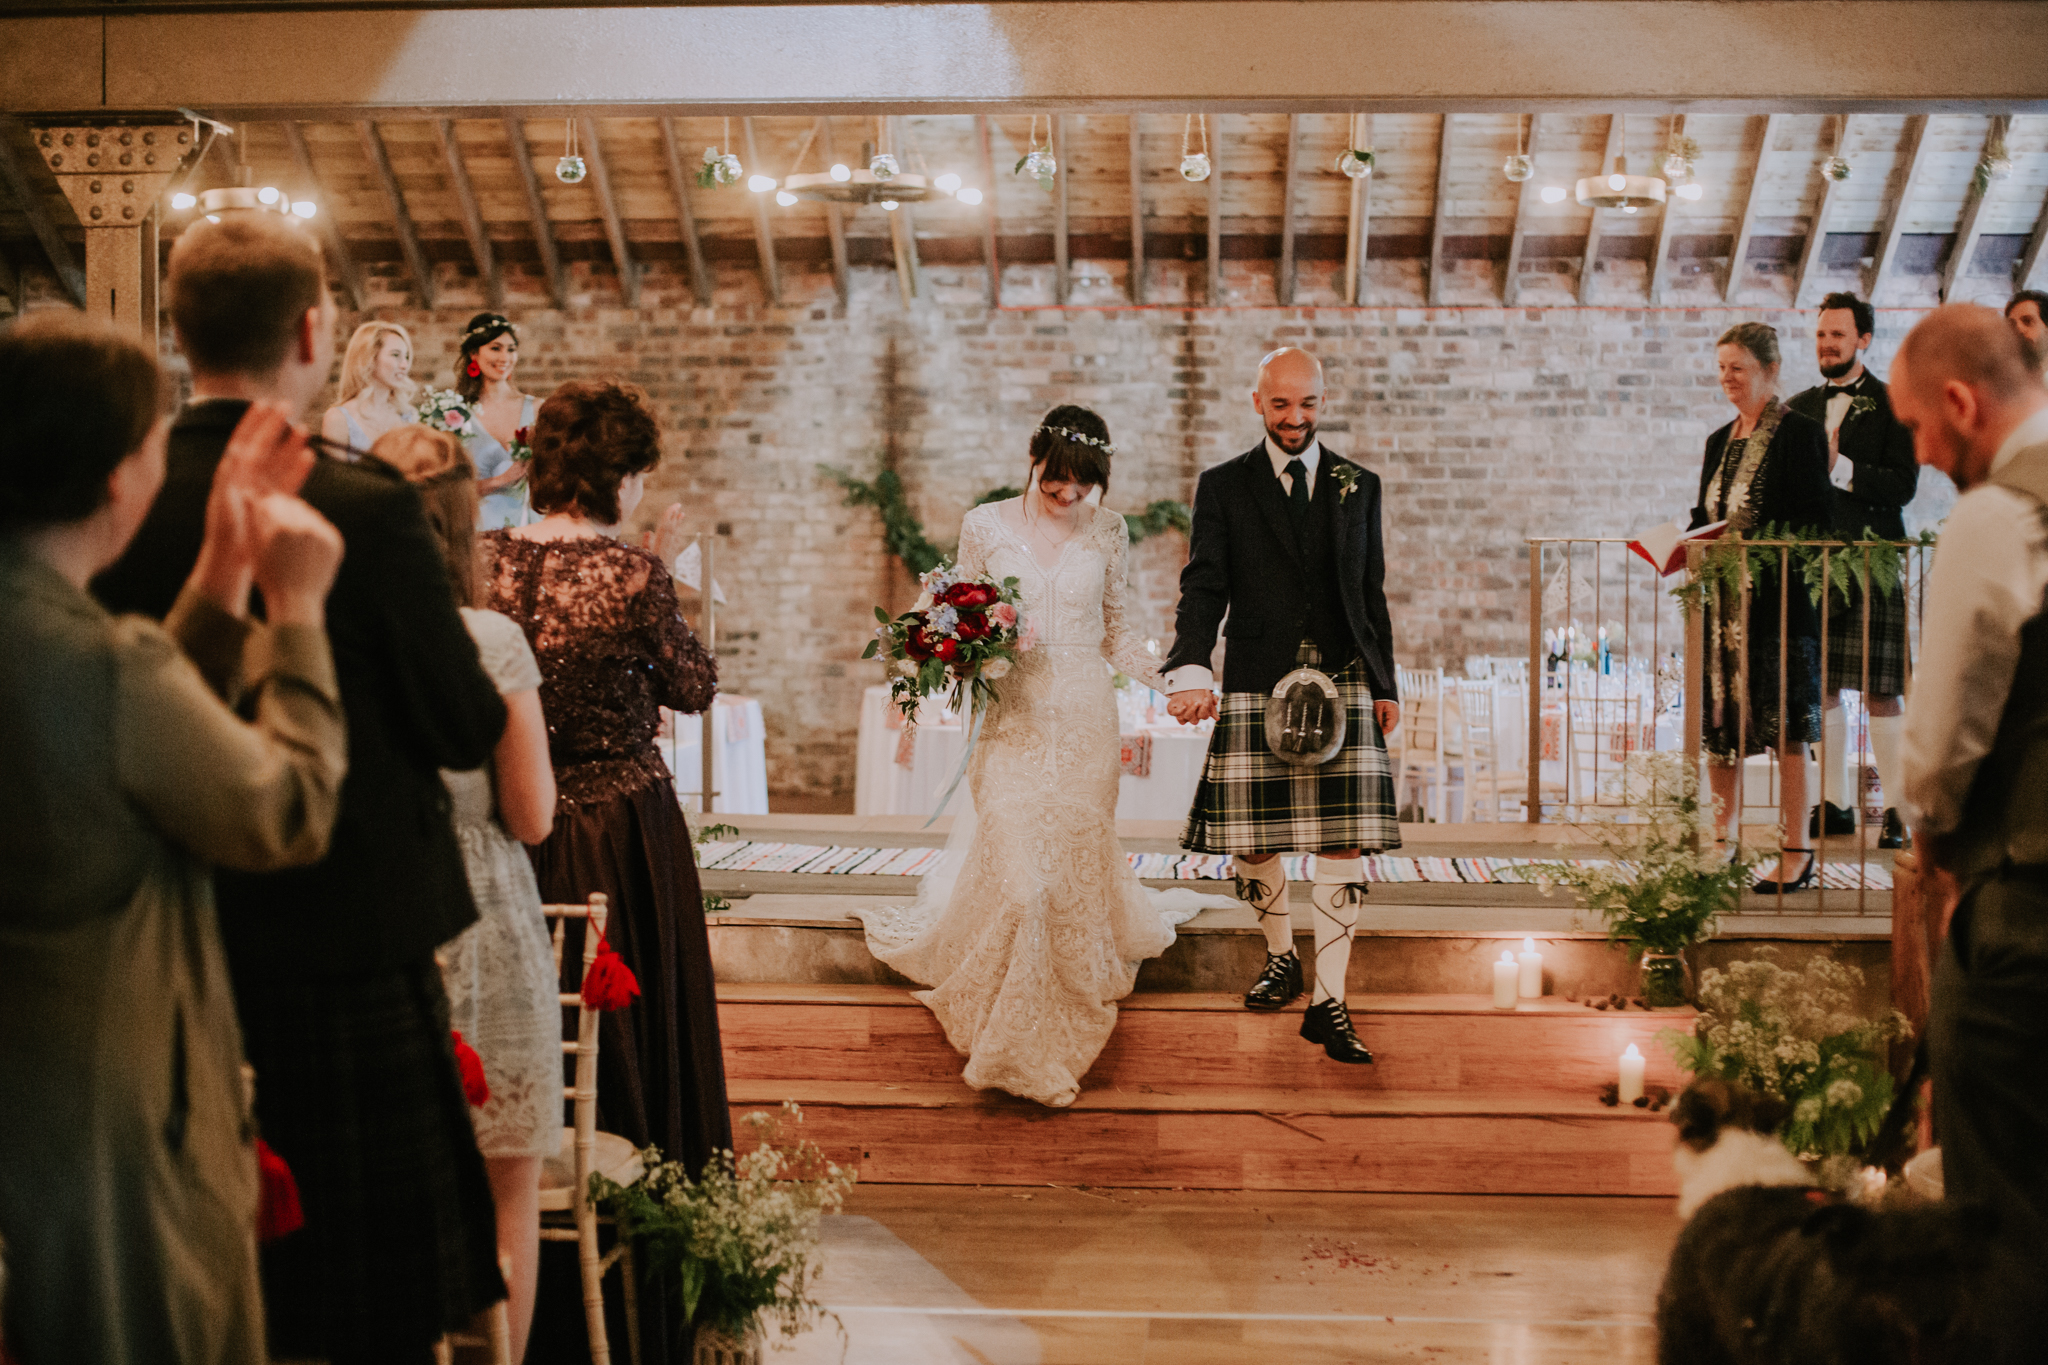 The bride and groom walk down the aisle as a husband and wife